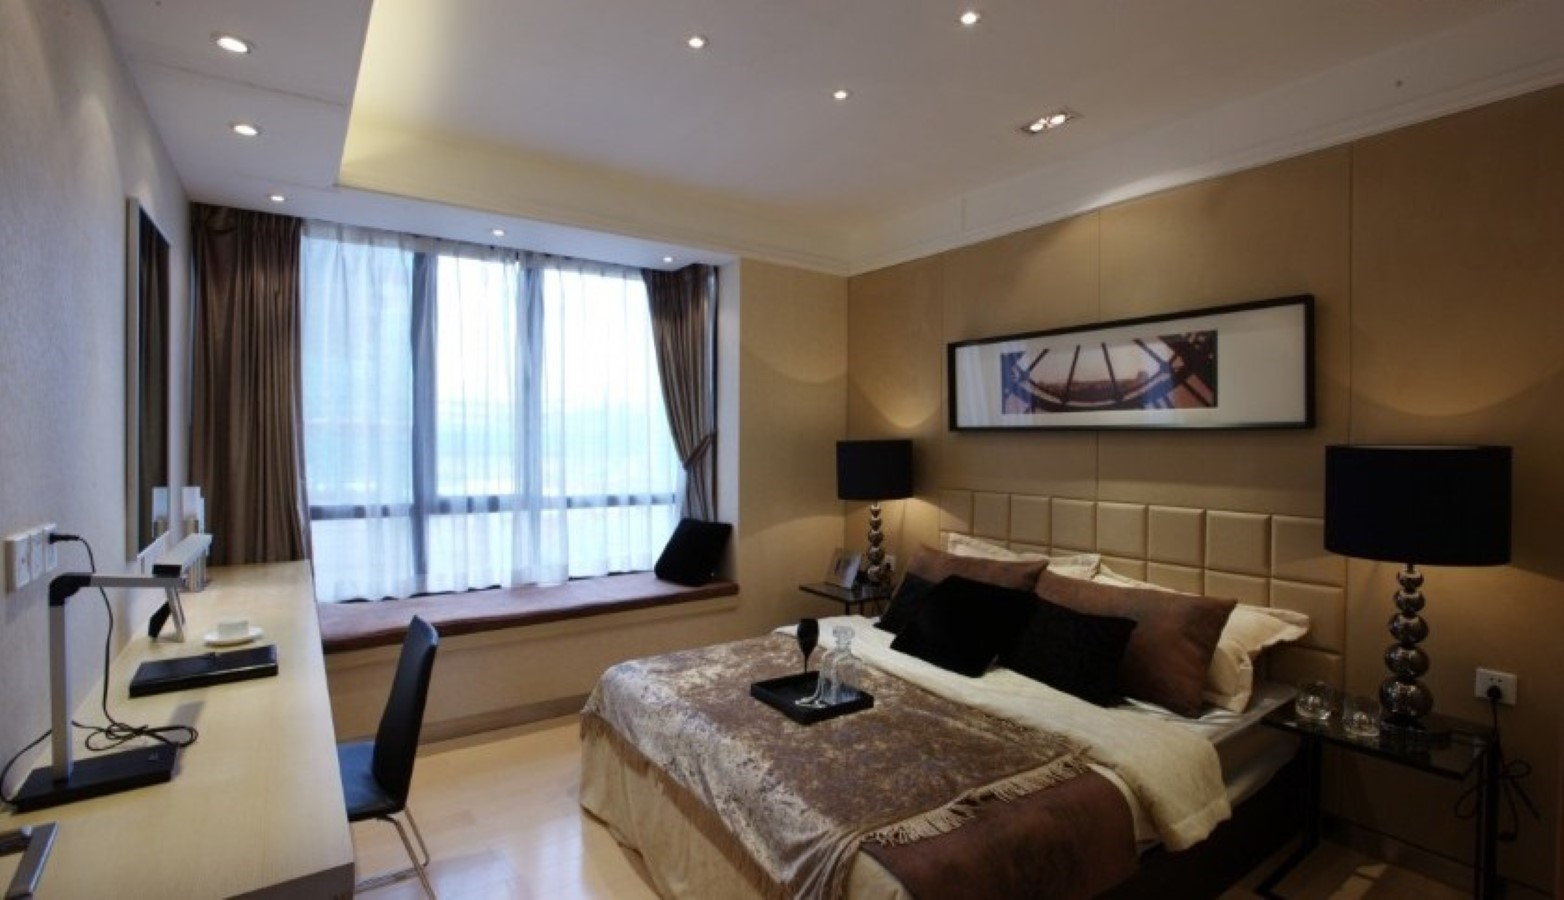 Bedroom Ideas How To Decorate A Large Bedroom Photos: How To Decorate Your Large Bay Window With Low Budget